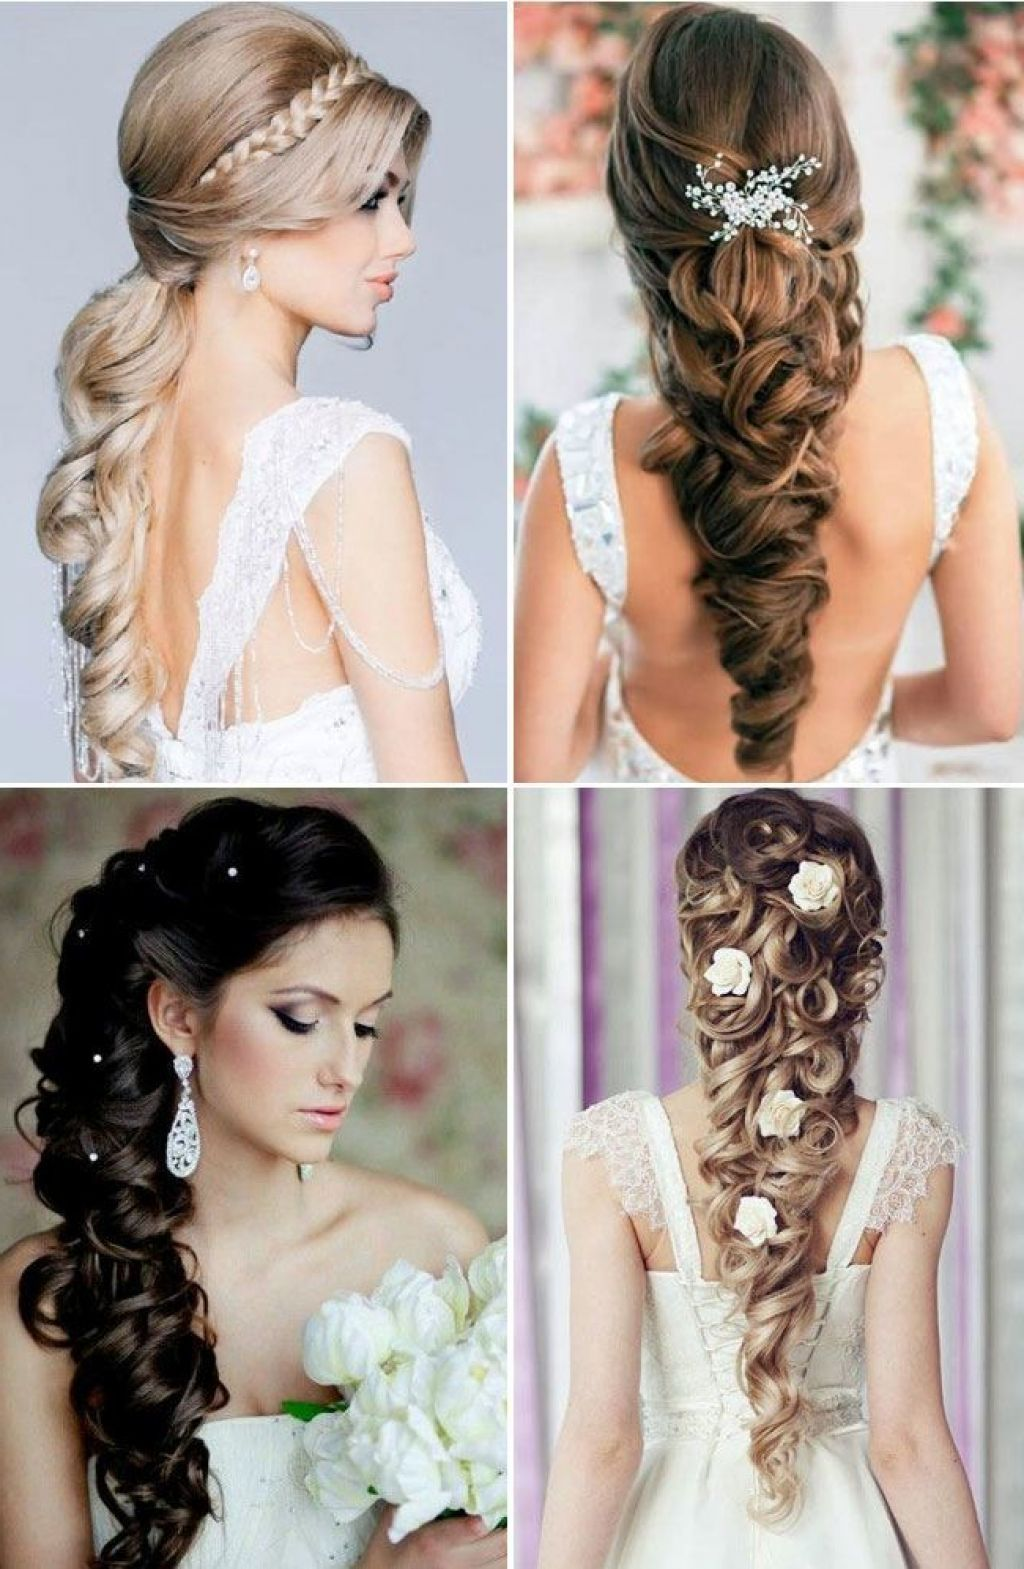 pin by shanna lee on hair | long hair wedding styles, bride